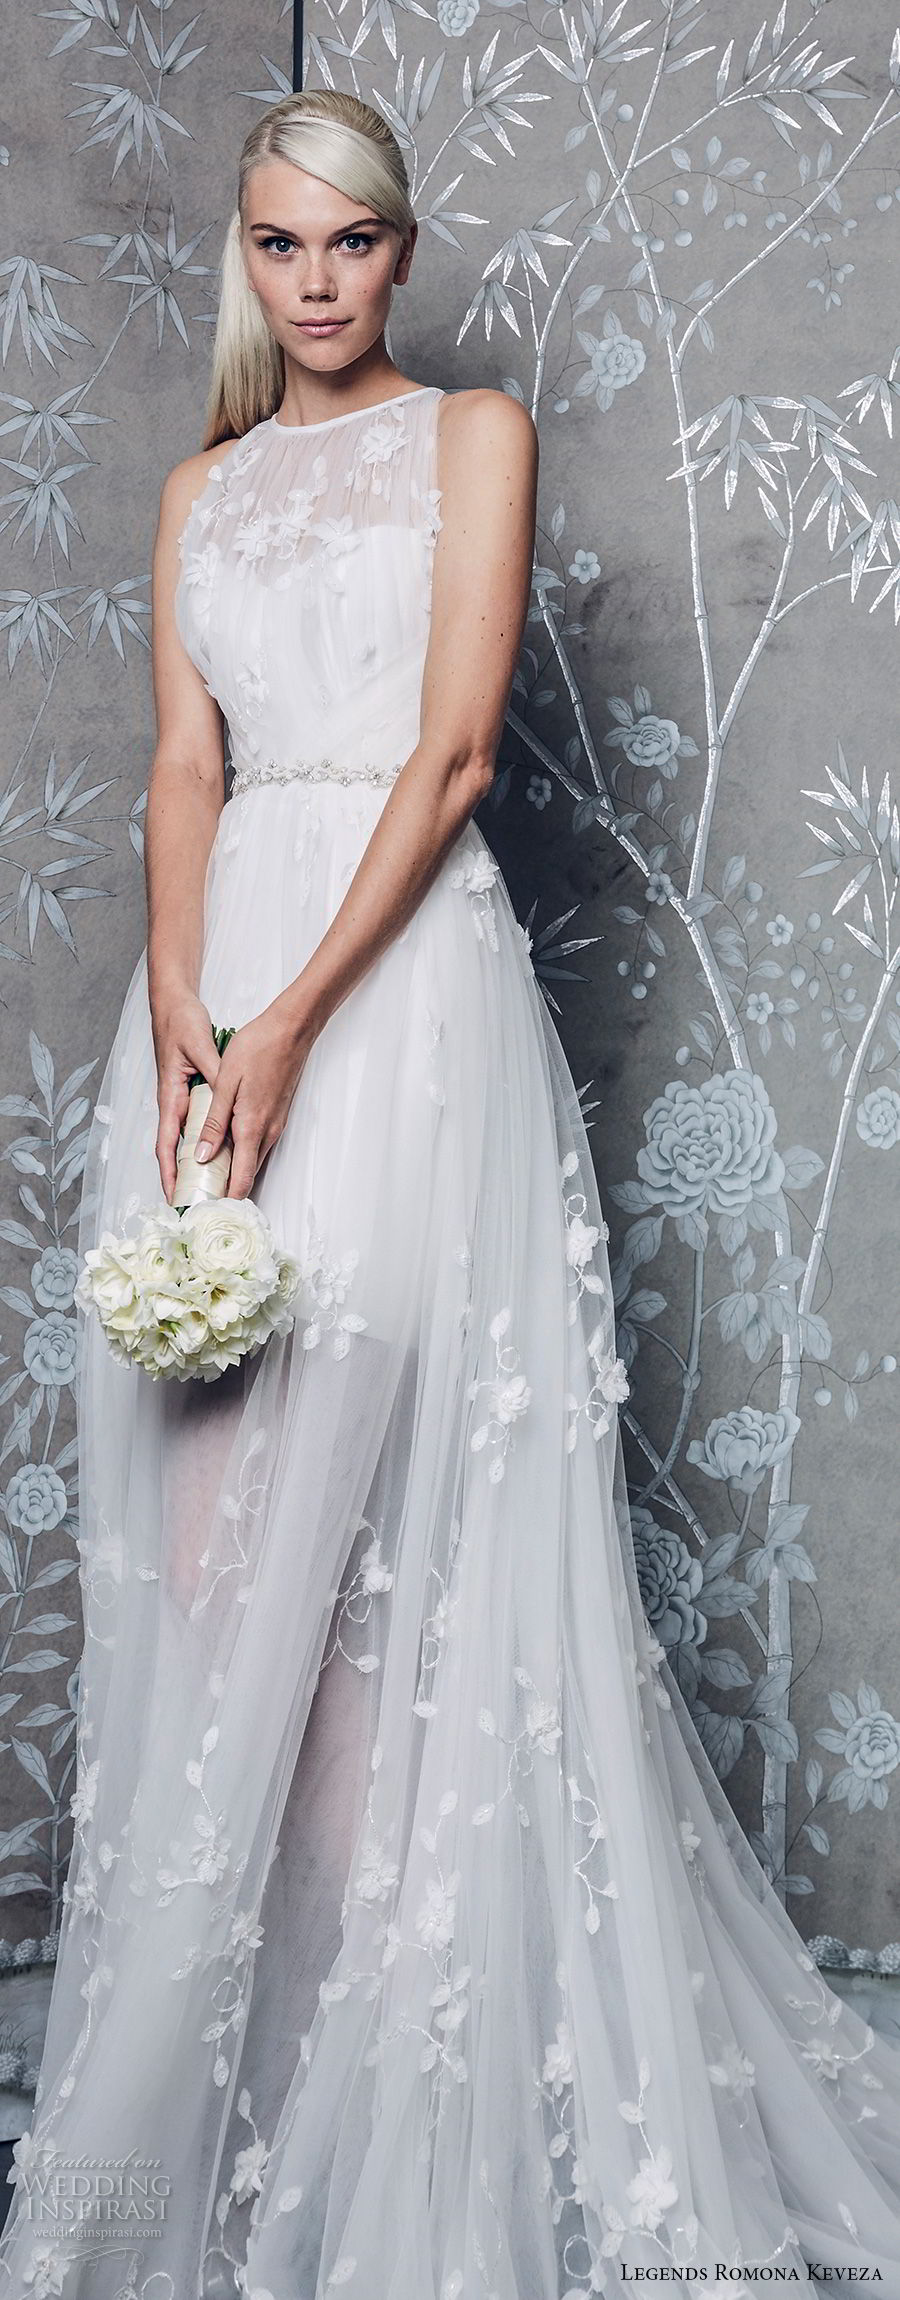 legends romona keveza fall 2018 sleeveless illusion jewel neck sweetheart neckline full light embellishment romantic soft a line wedding dress chapel train (3) lv